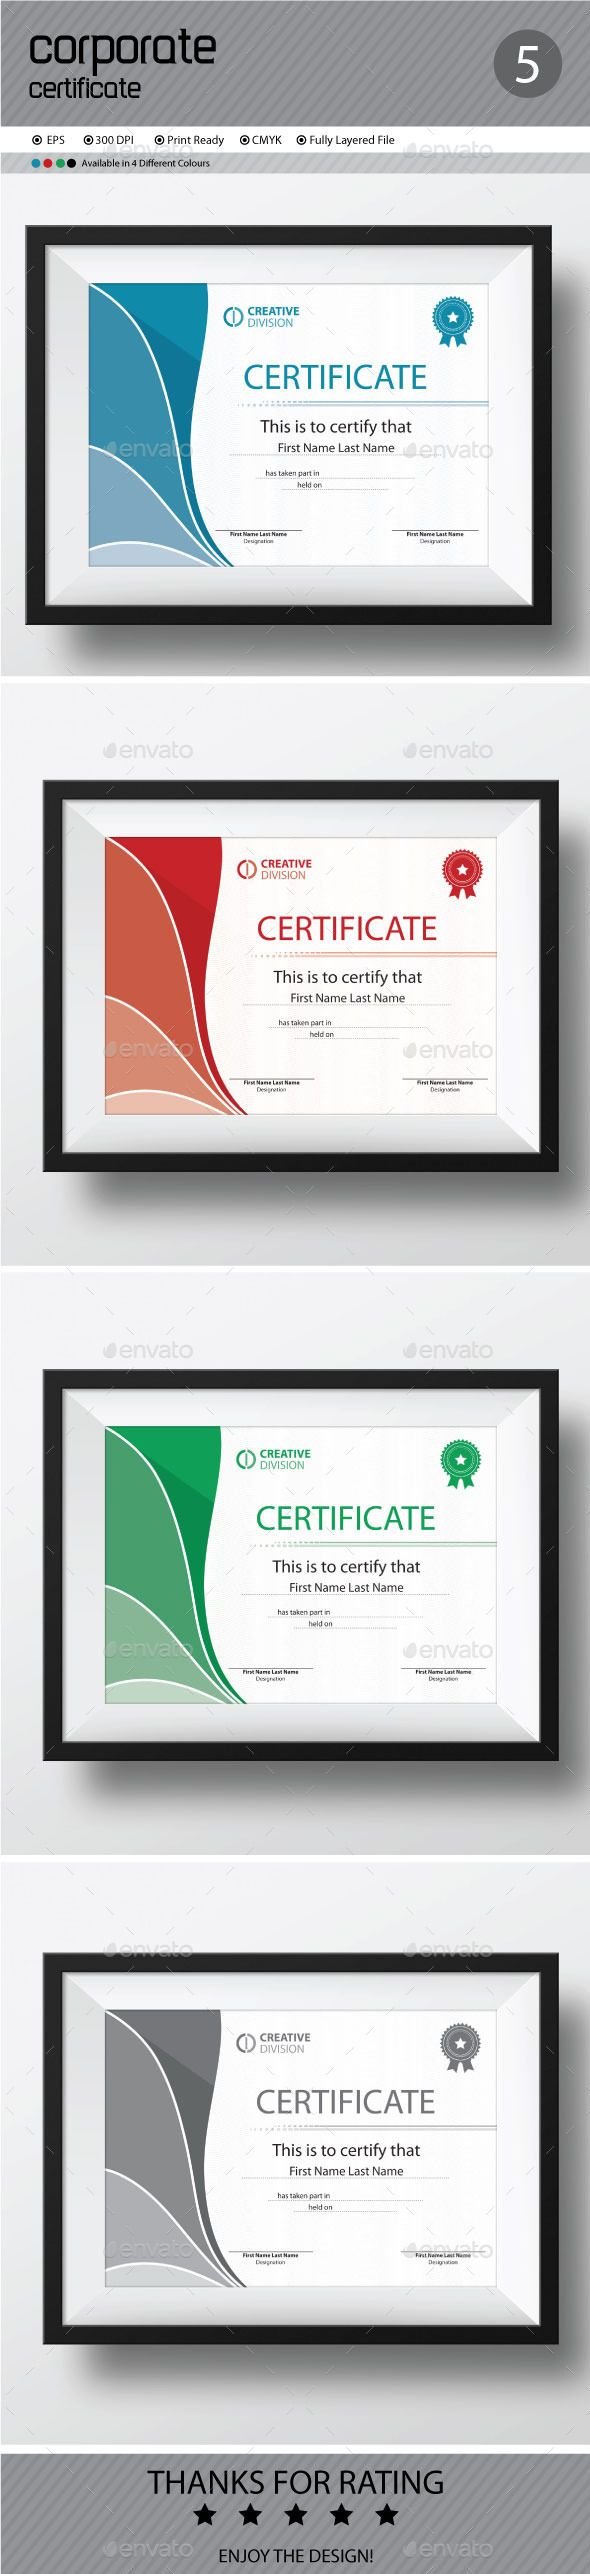 Certificate Template Vector EPS. Download here: http://graphicriver.net/item/certificate/11642855?ref=ksioks